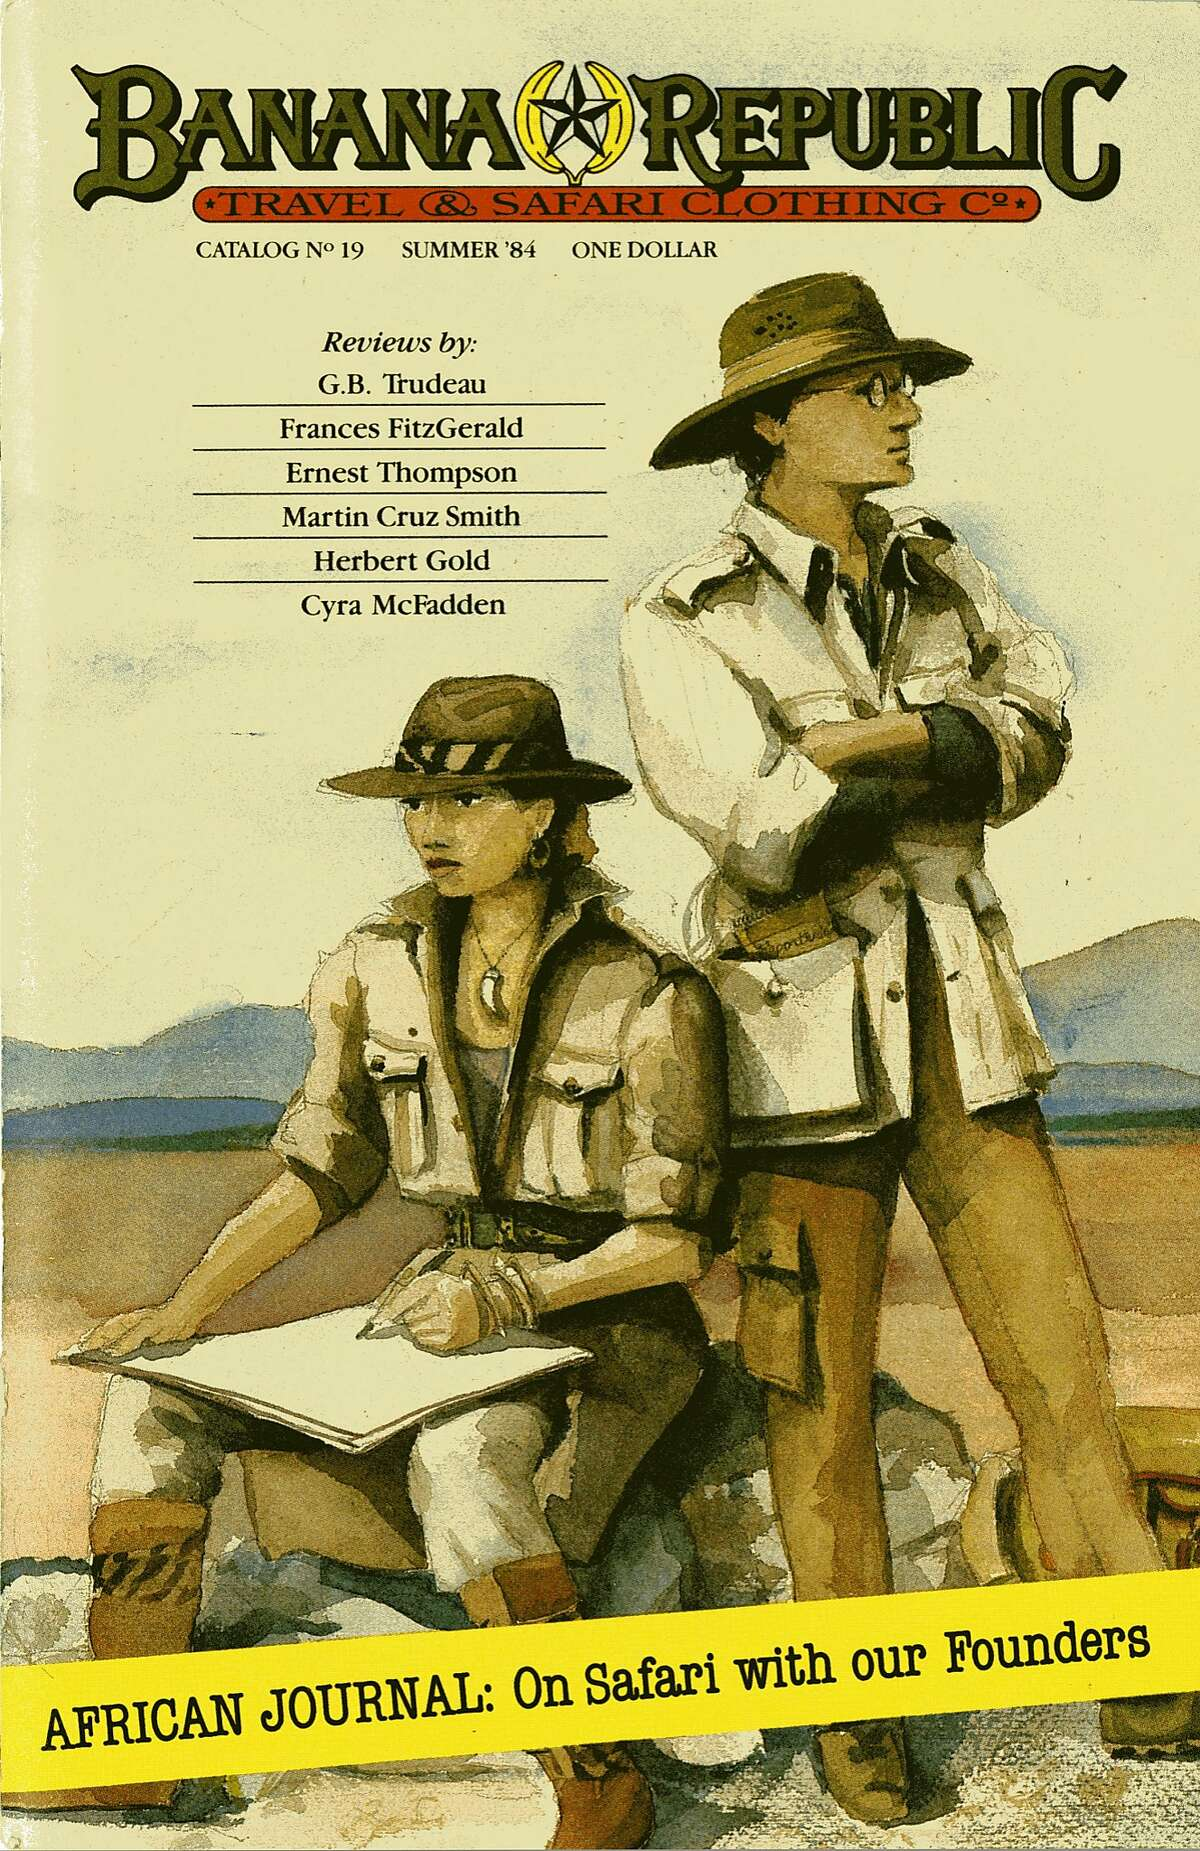 The cover of Banana Republic's catalog number 19 was drawn by Patricia Ziegler and pictures herself and her husband, Mel. The two started the company which is now owned by The Gap, Inc.